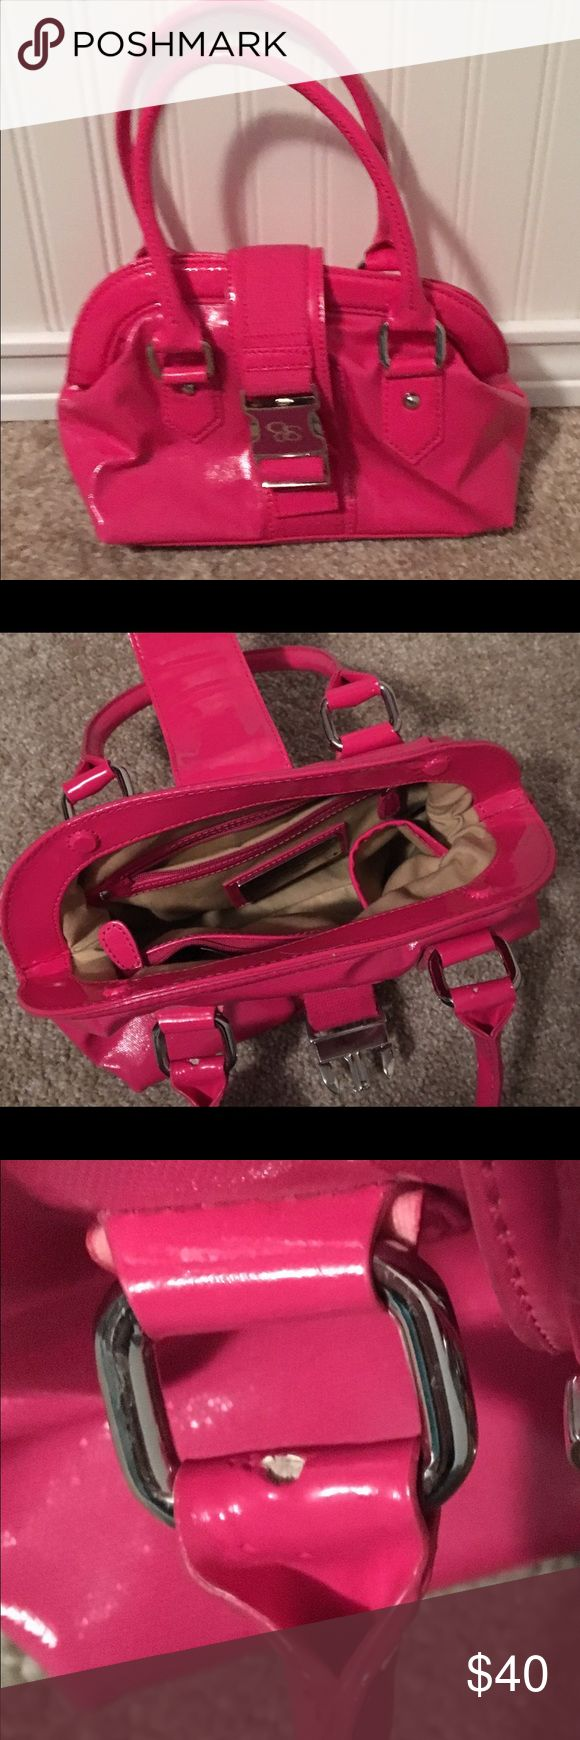 """Jessica Simpson Hot Pink Handbag Jessica Simpson. Hot Barbie Pink. Silver Hardware. Plastic-Like Material. Interior Snap Closure with Pink Exterior Flap featuring a Silver Buckle Closure. Slight Wear on the Inside Handles (as pictured, due to the fabric rubbing against each other). Handle Defects are not Visible From the Exterior. Jessica Simpson Logo across the Bottom of the Bag. Bag Features Tiny Silver Feet at the Button to avoid Damage. Measurements : 7"""" Height, 11"""" Length. Perfect for…"""